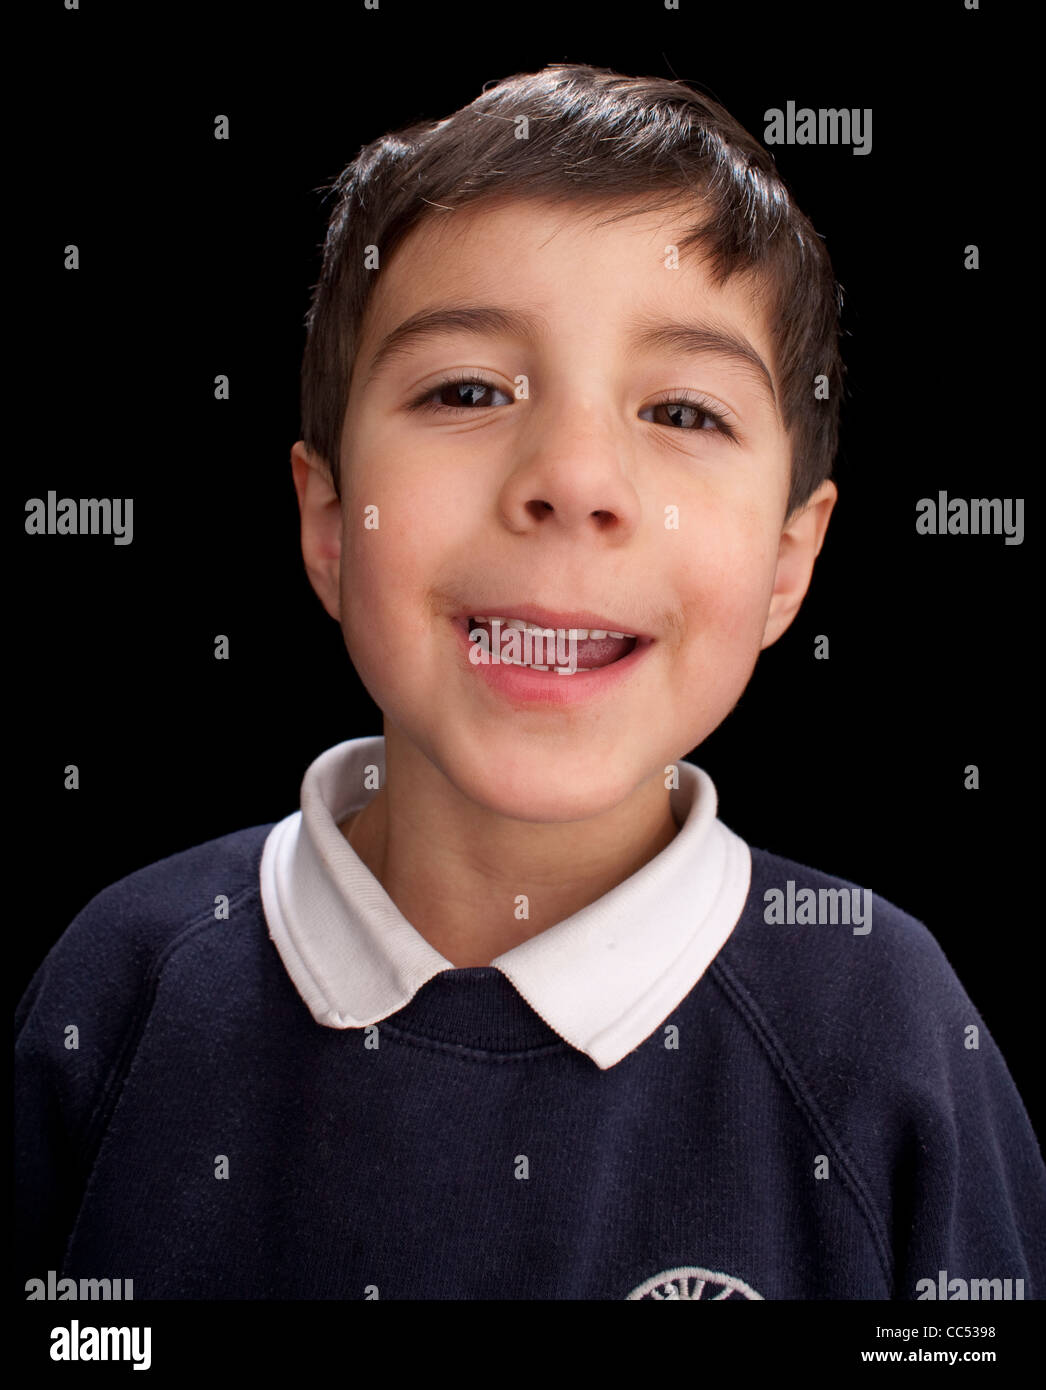 Boy smiling, studio shot - Stock Image